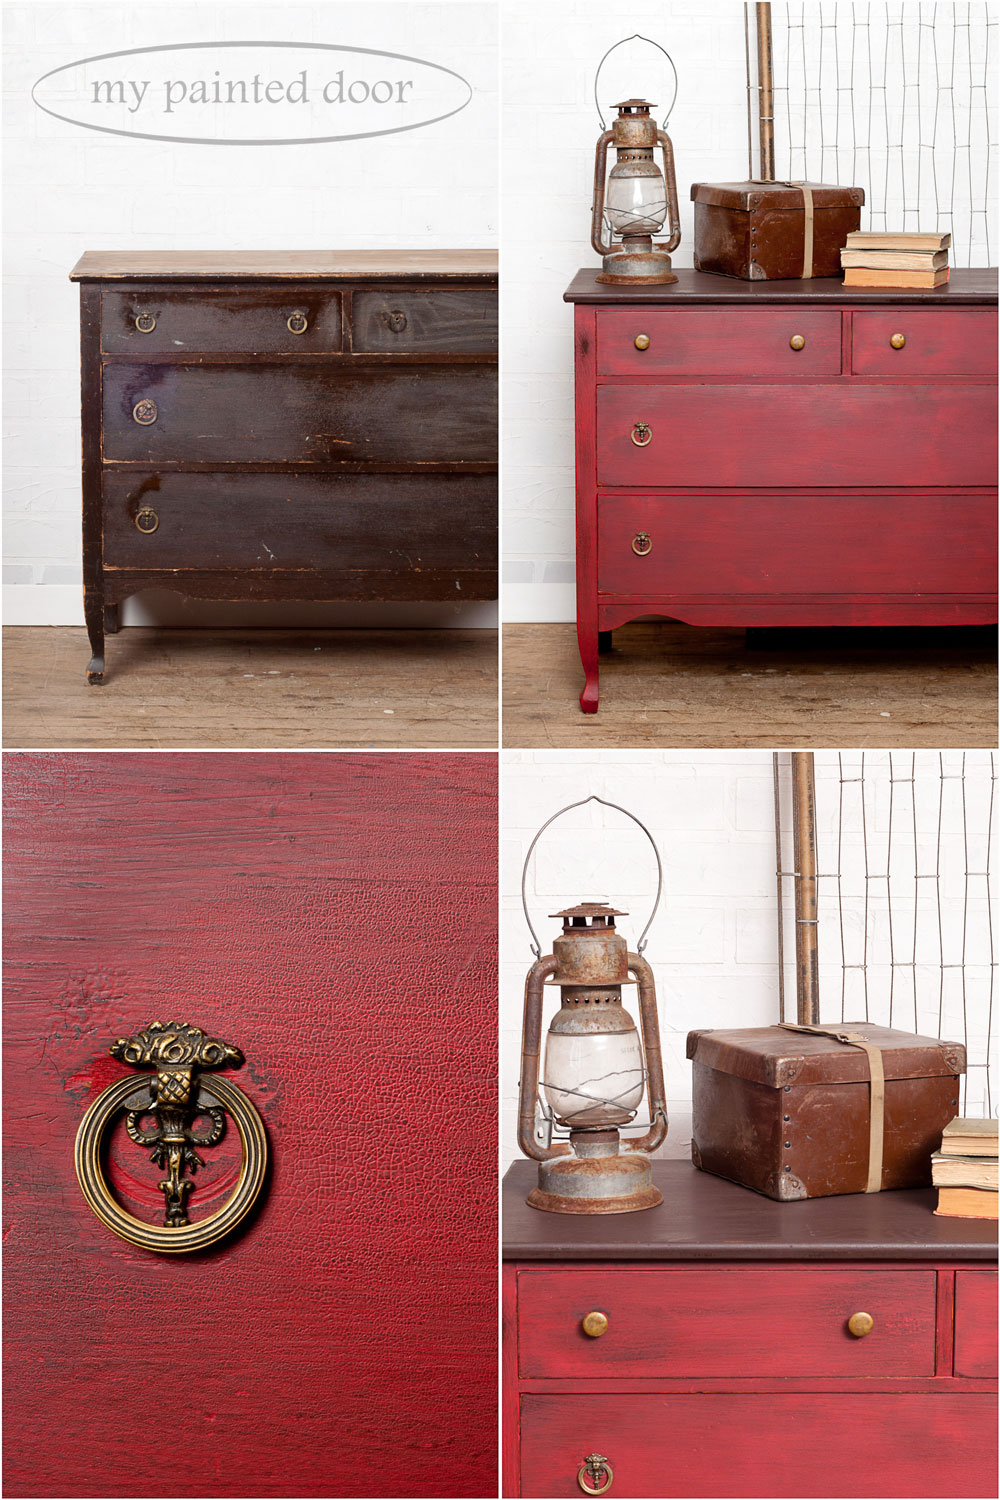 Before and after photos - Dresser painted in Miss Mustard Seed's Milk Paint in Tricycle